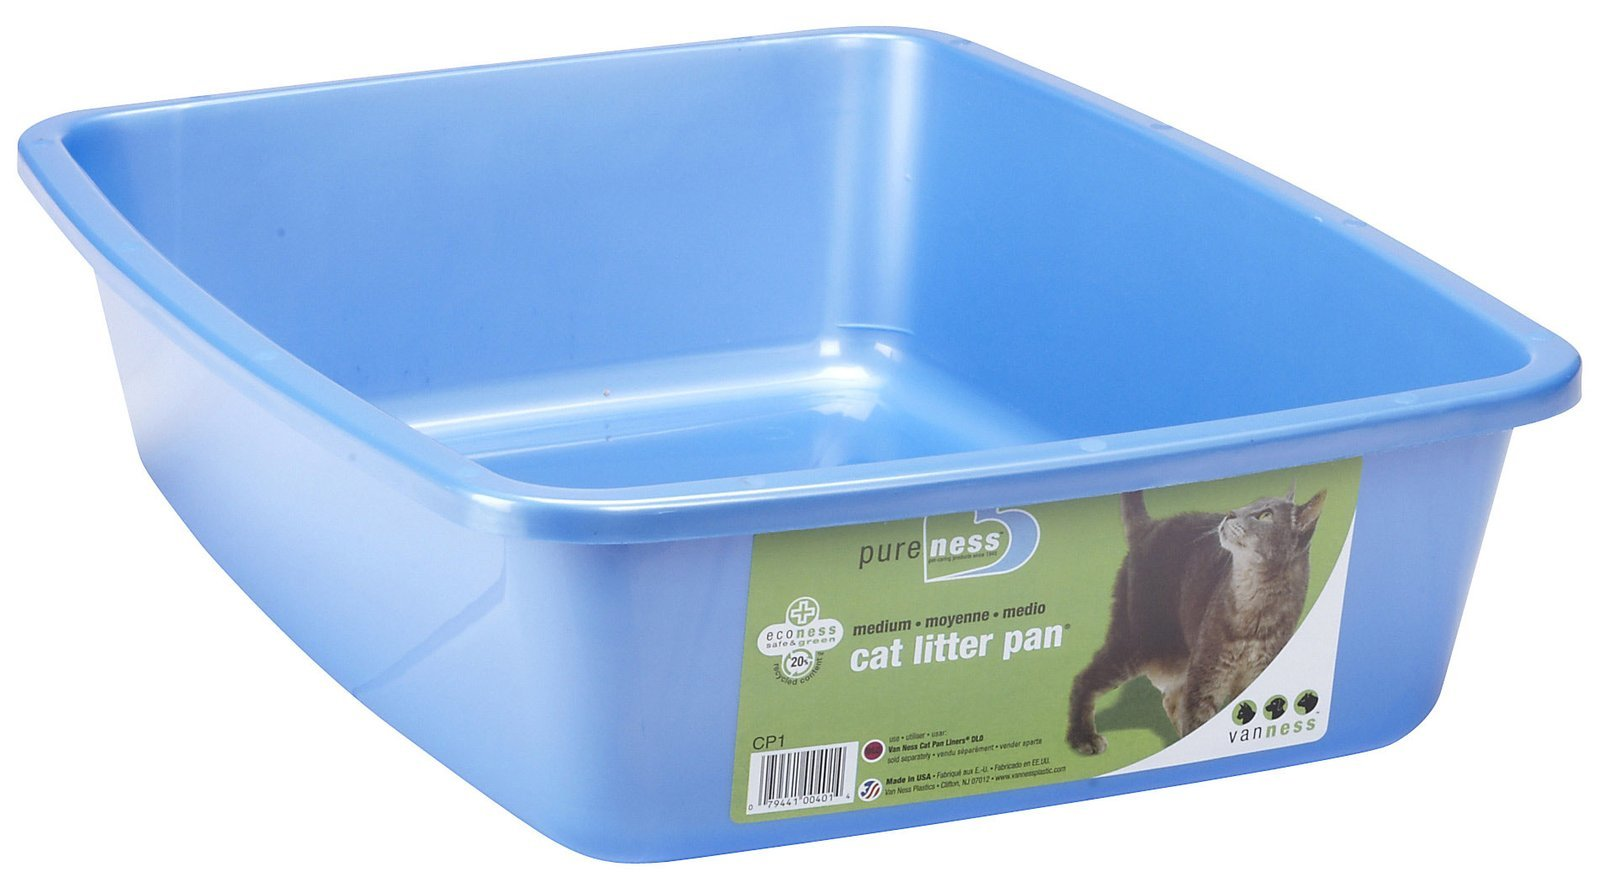 Medium Cat Pan - 16 in. x 12 in. x 4 in. (Colors may vary)